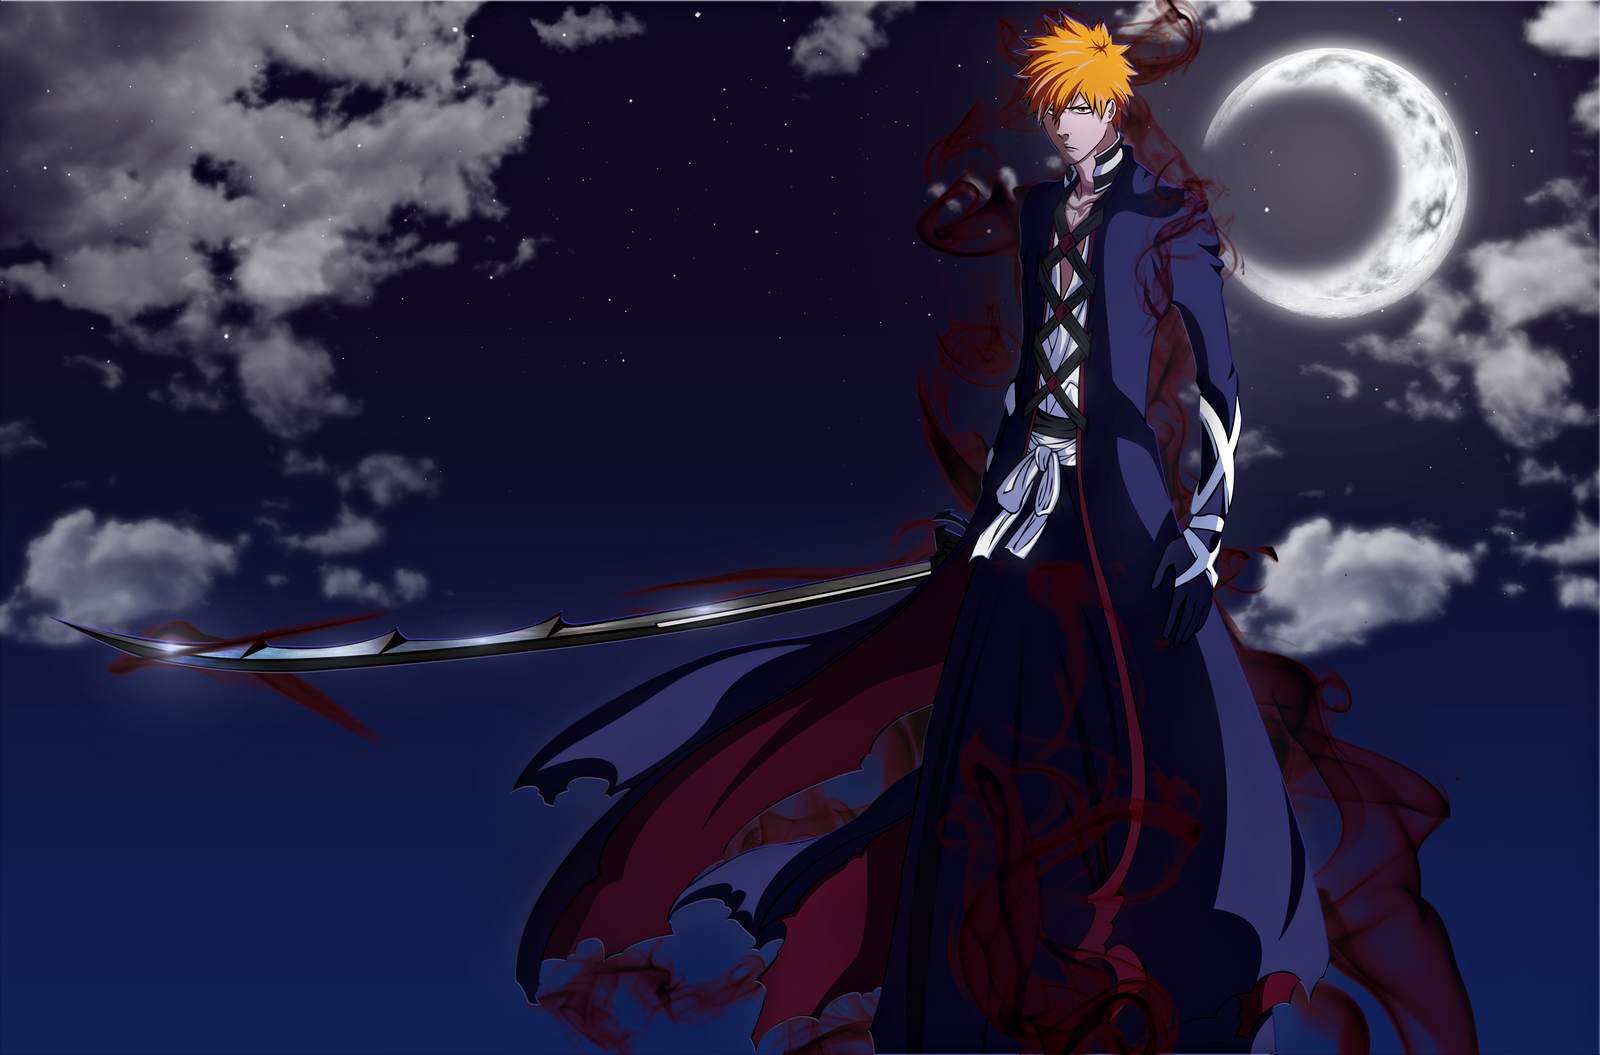 Bleach : Ichigo New Bankai by Yoruden on DeviantArt